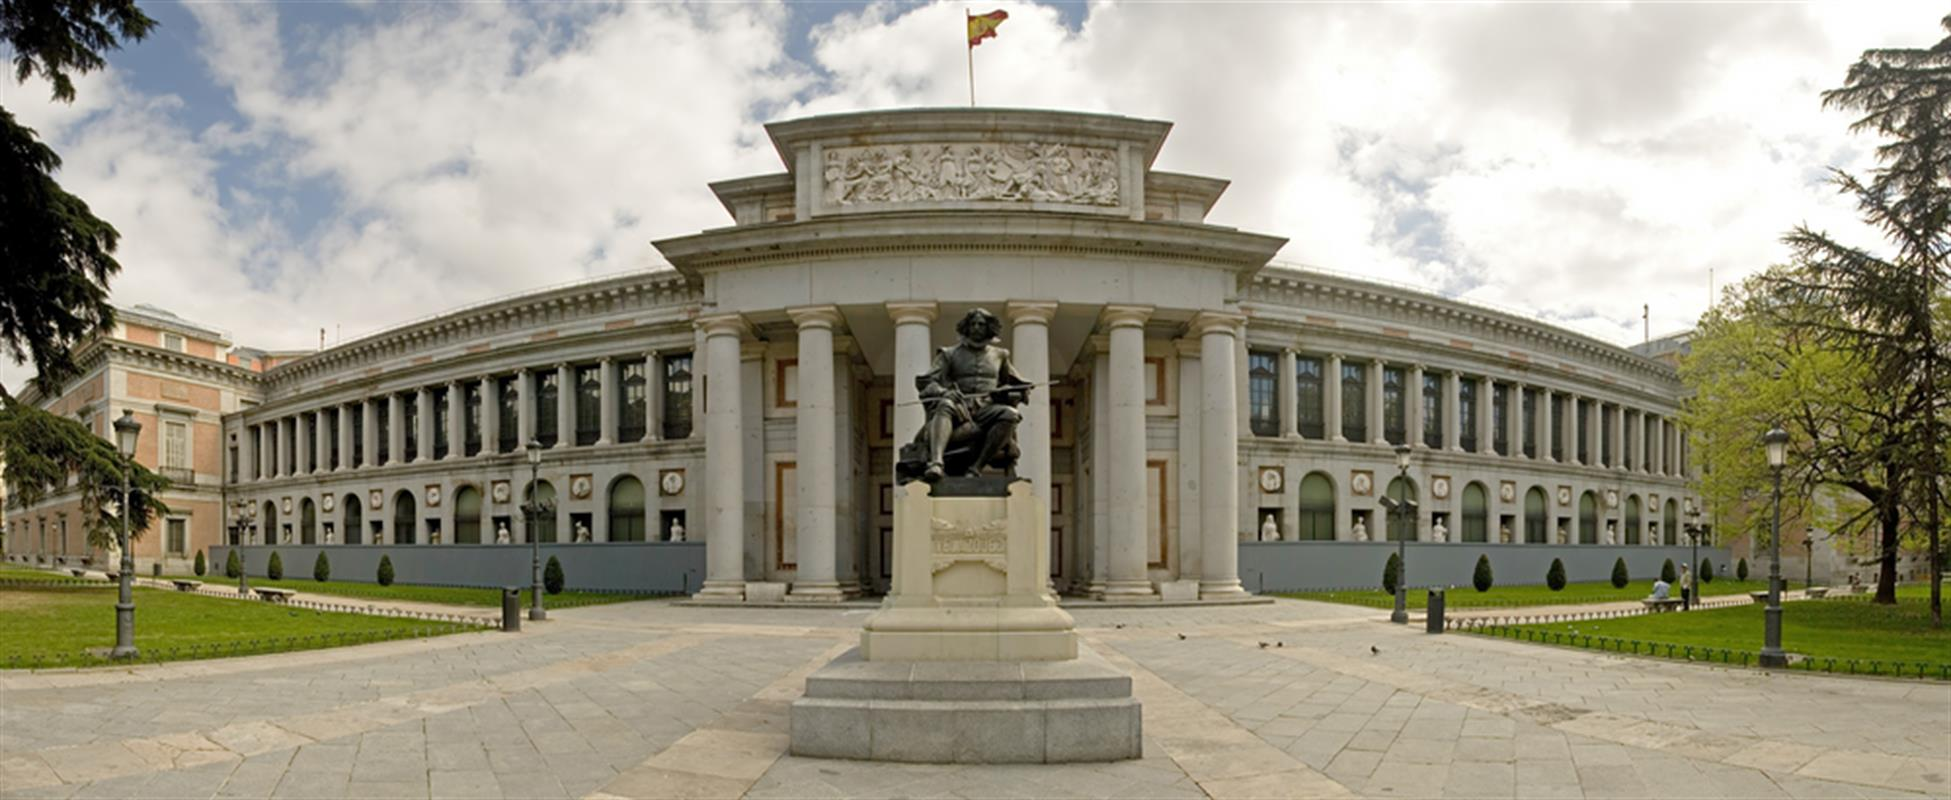 Museo del Prado,things to do in Madrid